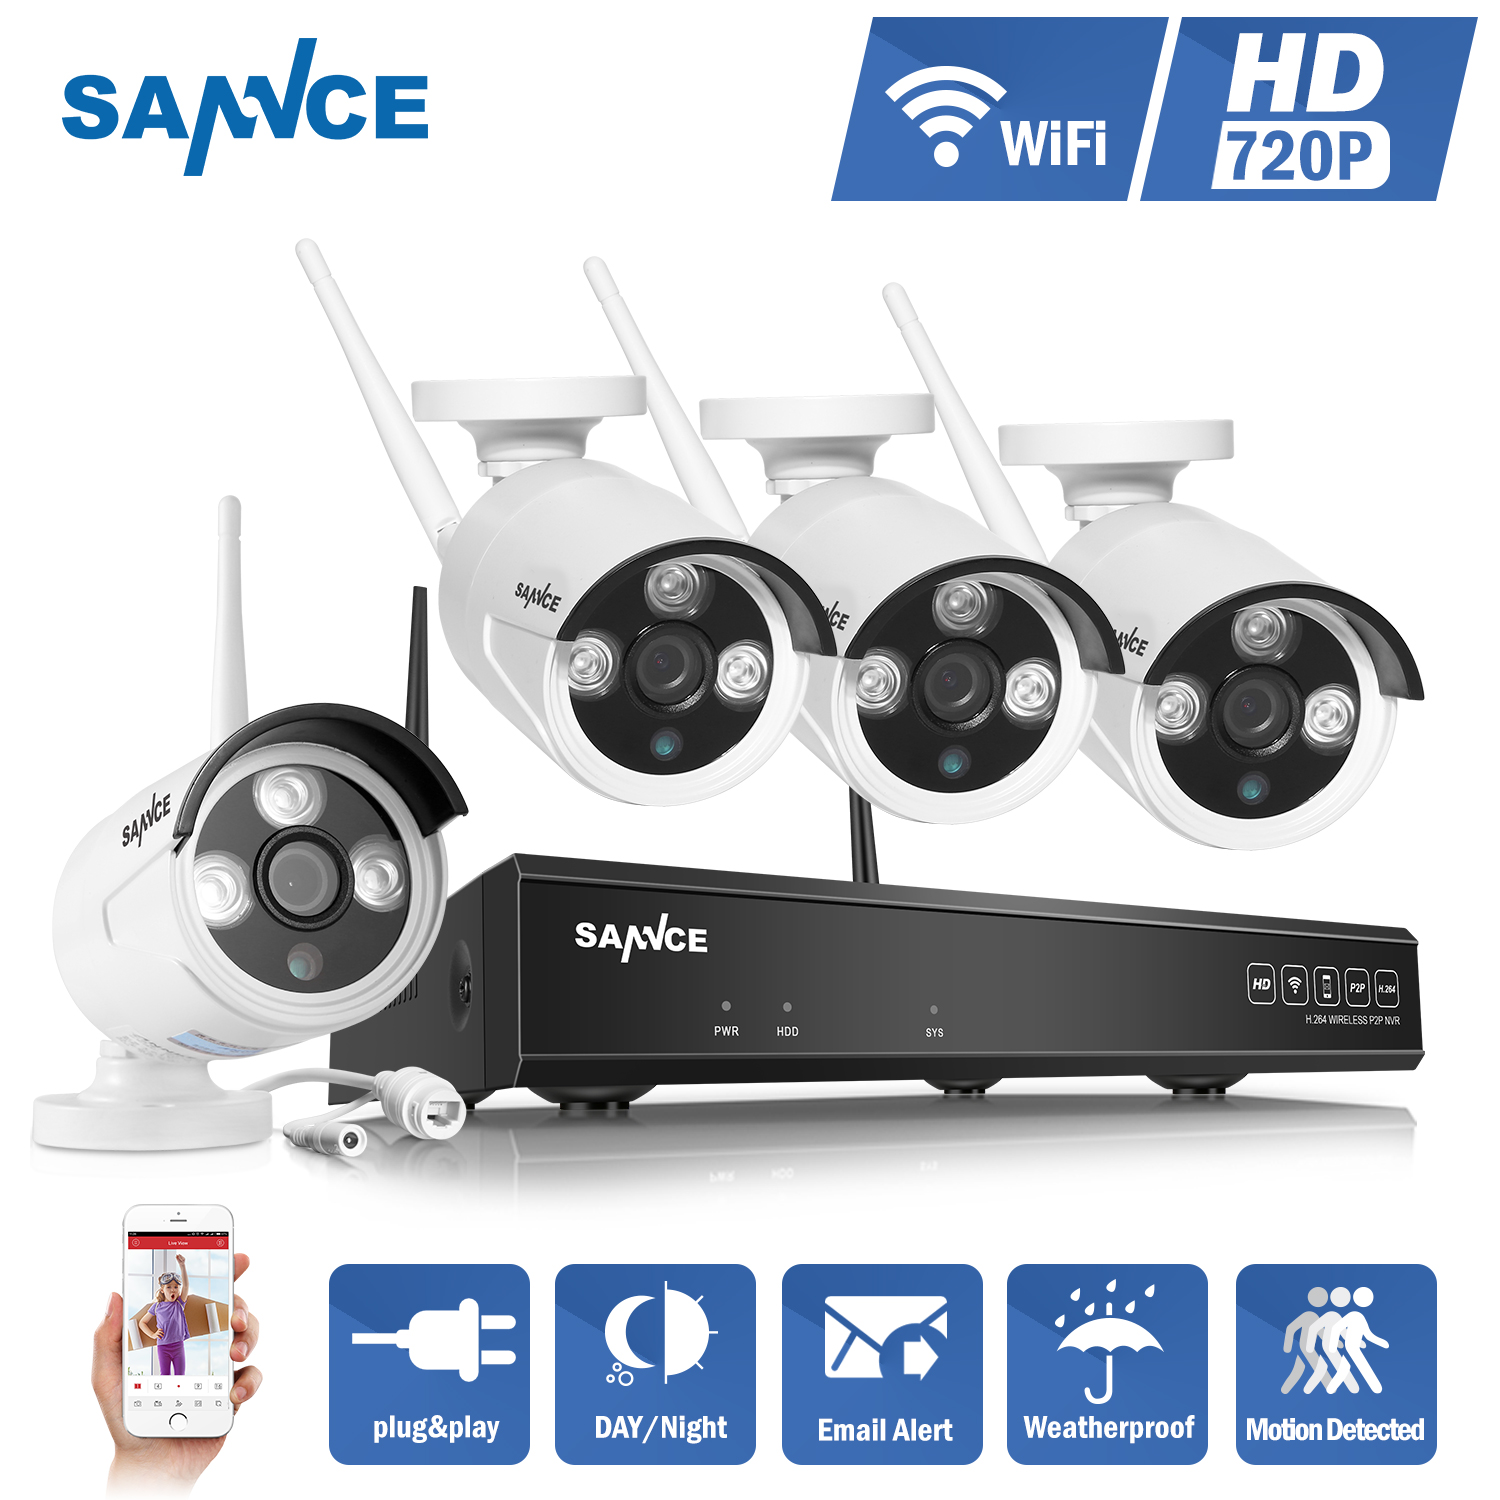 SANNCE 4CH Wireless IP Camera Wi-fi NVR Kit 720P HD Outdoor IR Night Vision Security Network WIFI CCTV System P2P Plug and Play free shipping dahua 4ch nvr wireless cctv system 720p hd h 264 ir outdoor security ip camera wifi surveillance kit